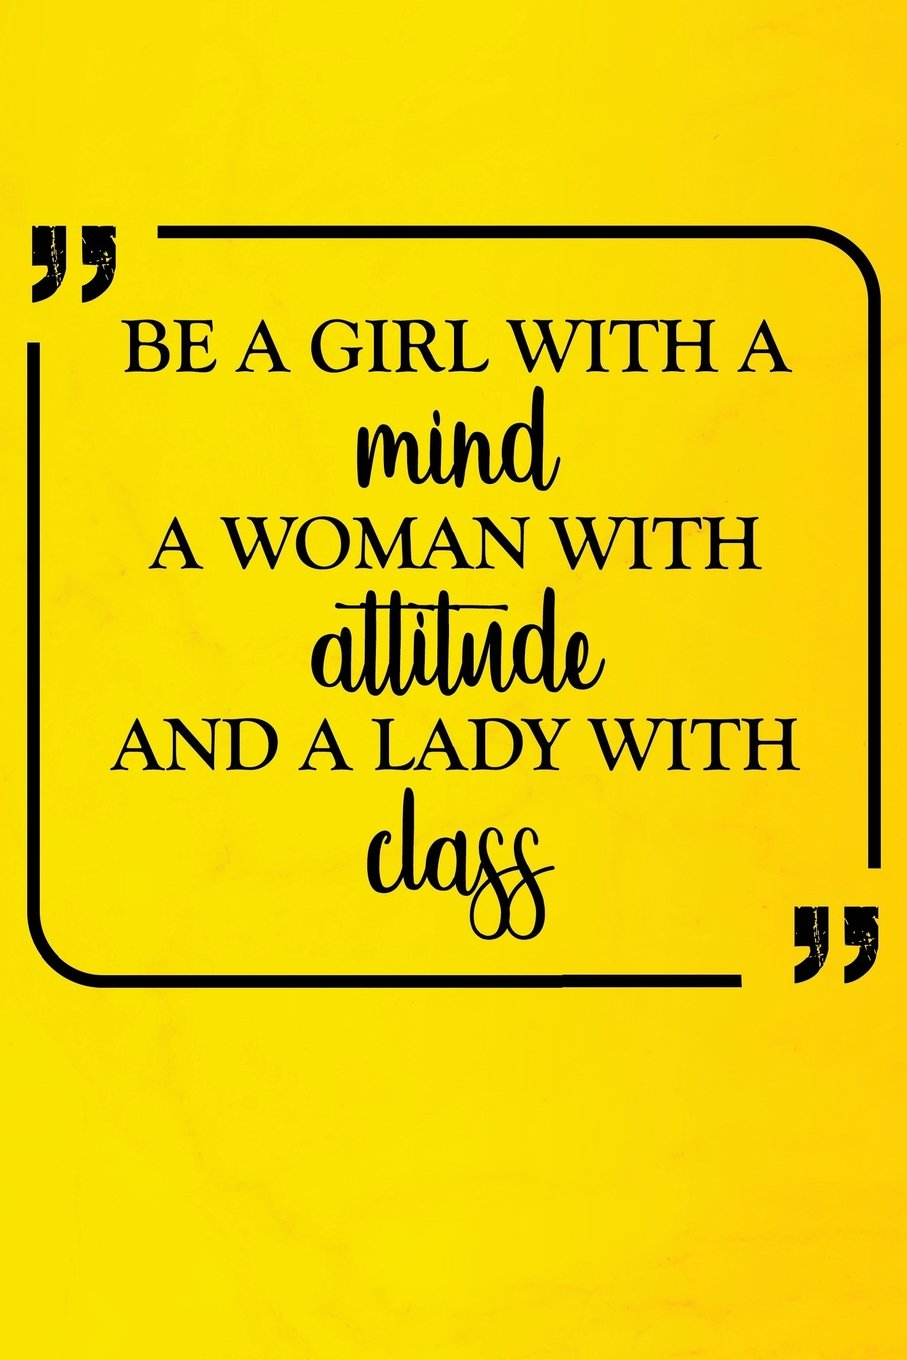 Download Be A Girl With A Mind A Woman With Attitude And A Lady With Class: Motivational Journal  120-Page College-Ruled Female Empowerment Notebook  6 X 9 Perfect Bound Softcover (Motivational Journals) pdf